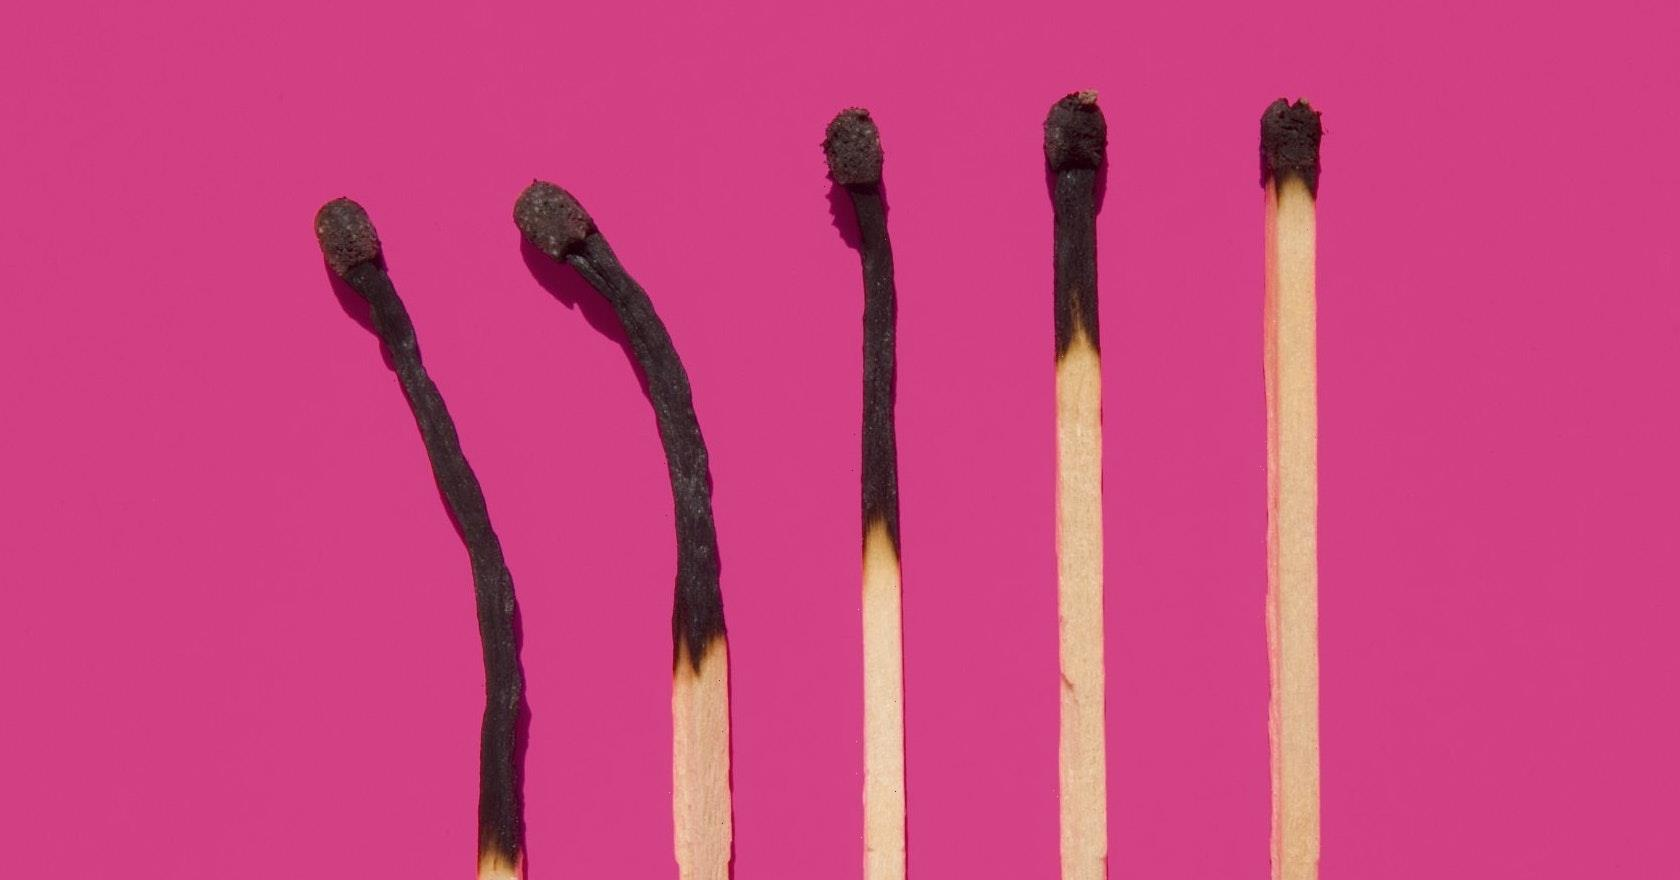 Drained heading into the weekend? These 6 steps promise to take you from burnout to thriving